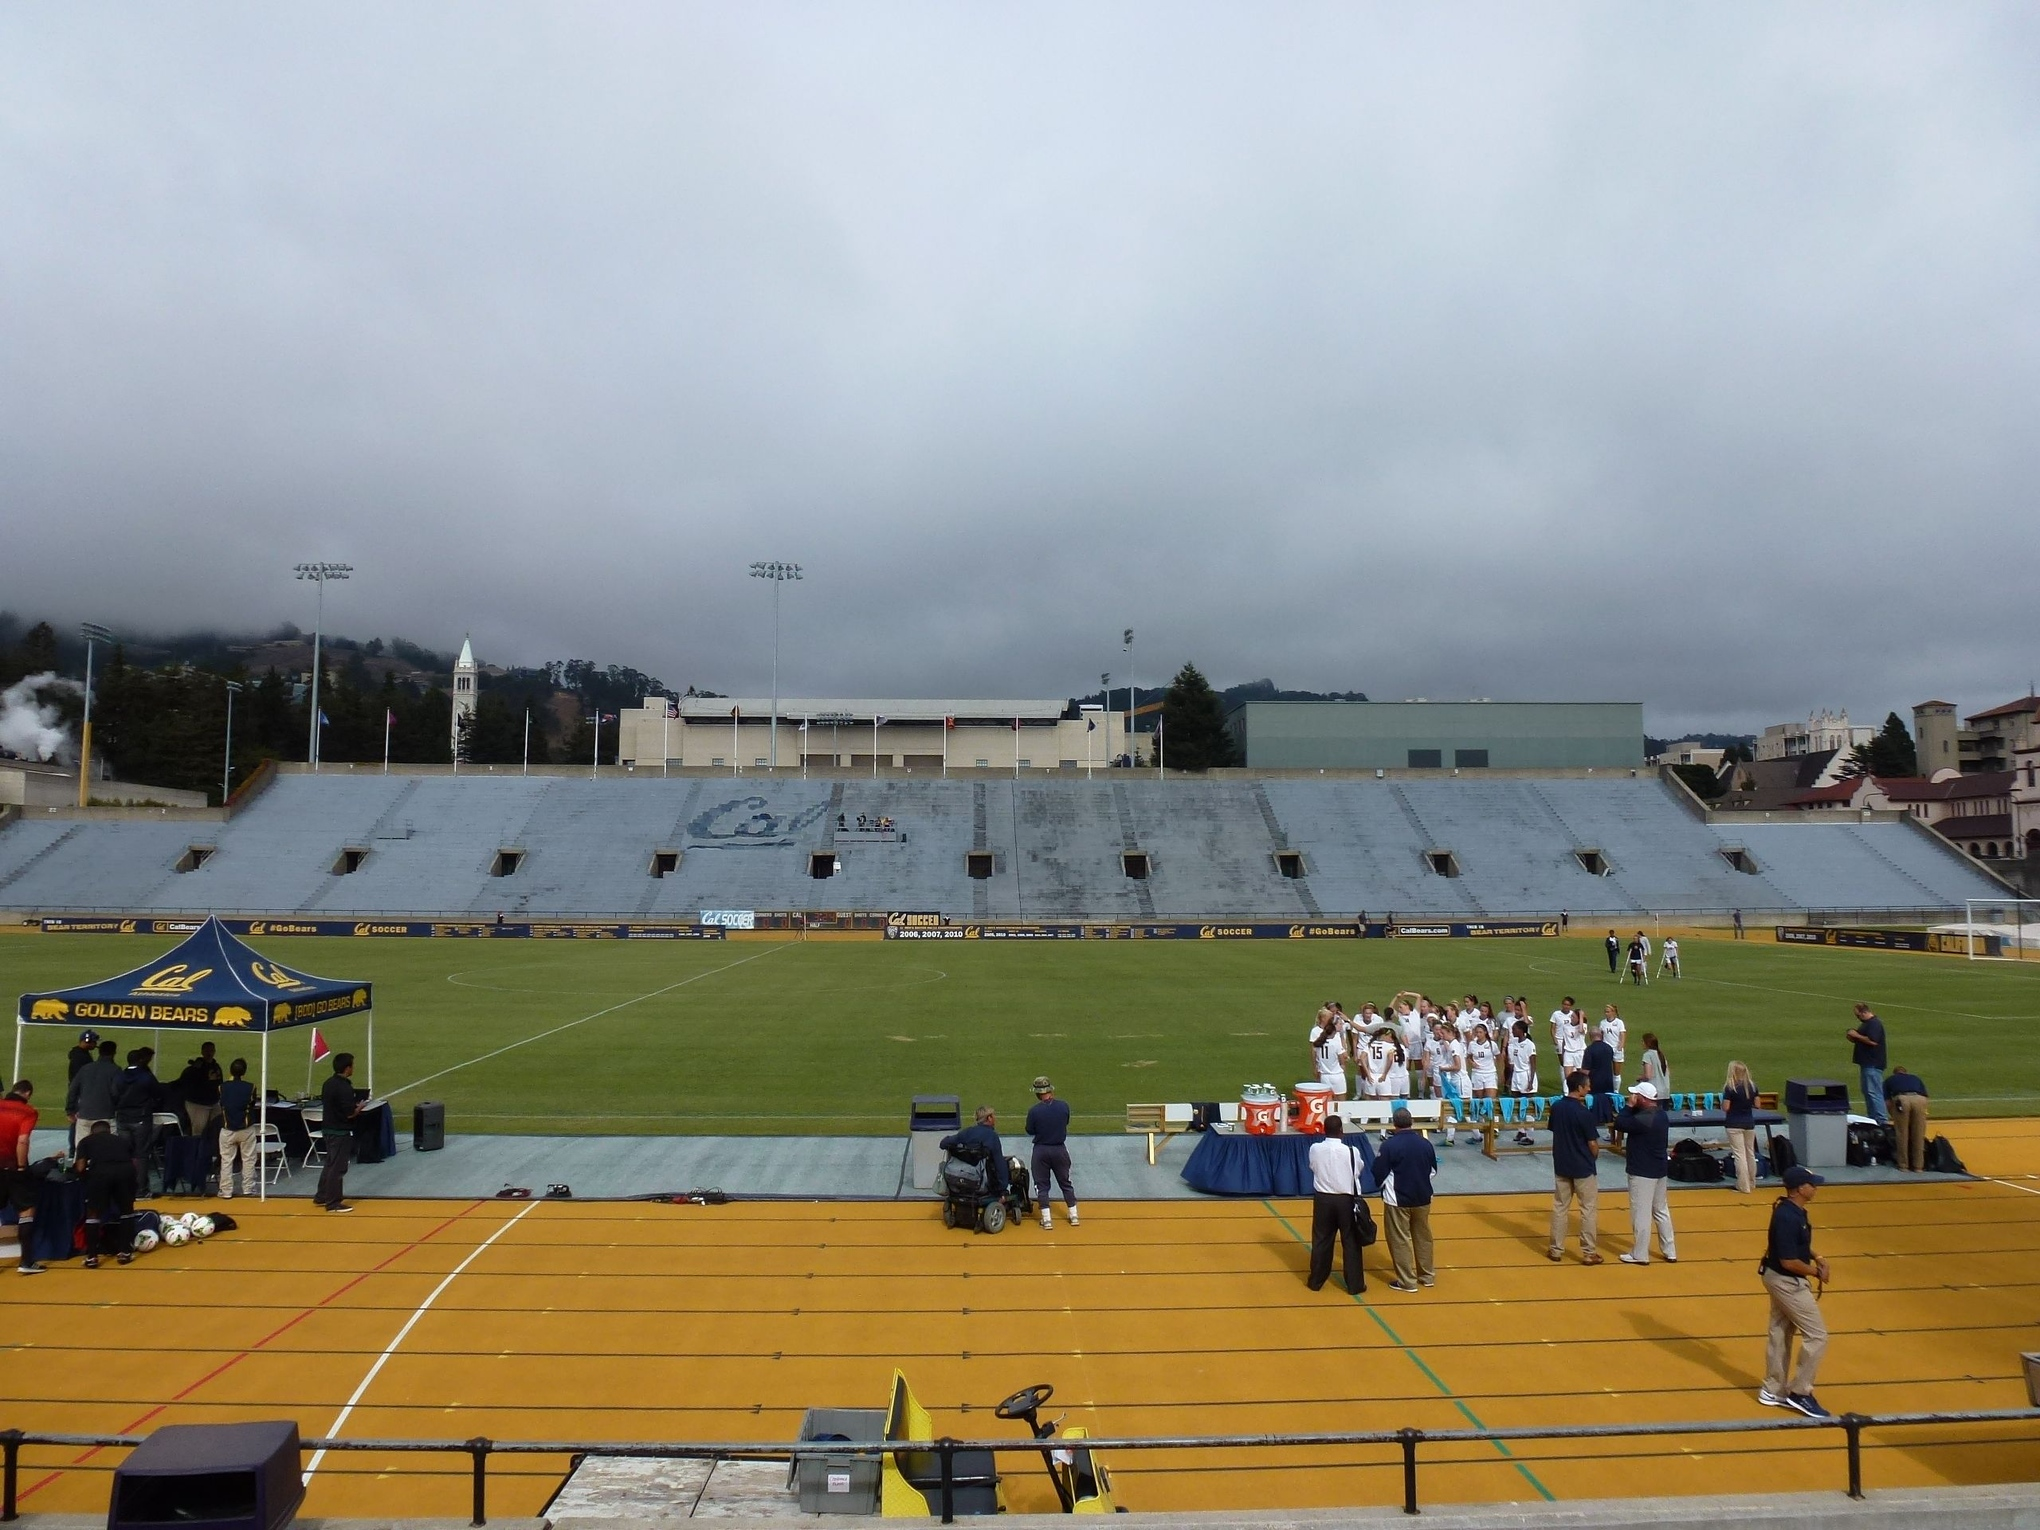 my cal women s soccer match experience a photo essay i have actually never been really been to edwards stadium before that day as a student i have poked my head in one time seeing that there was an event